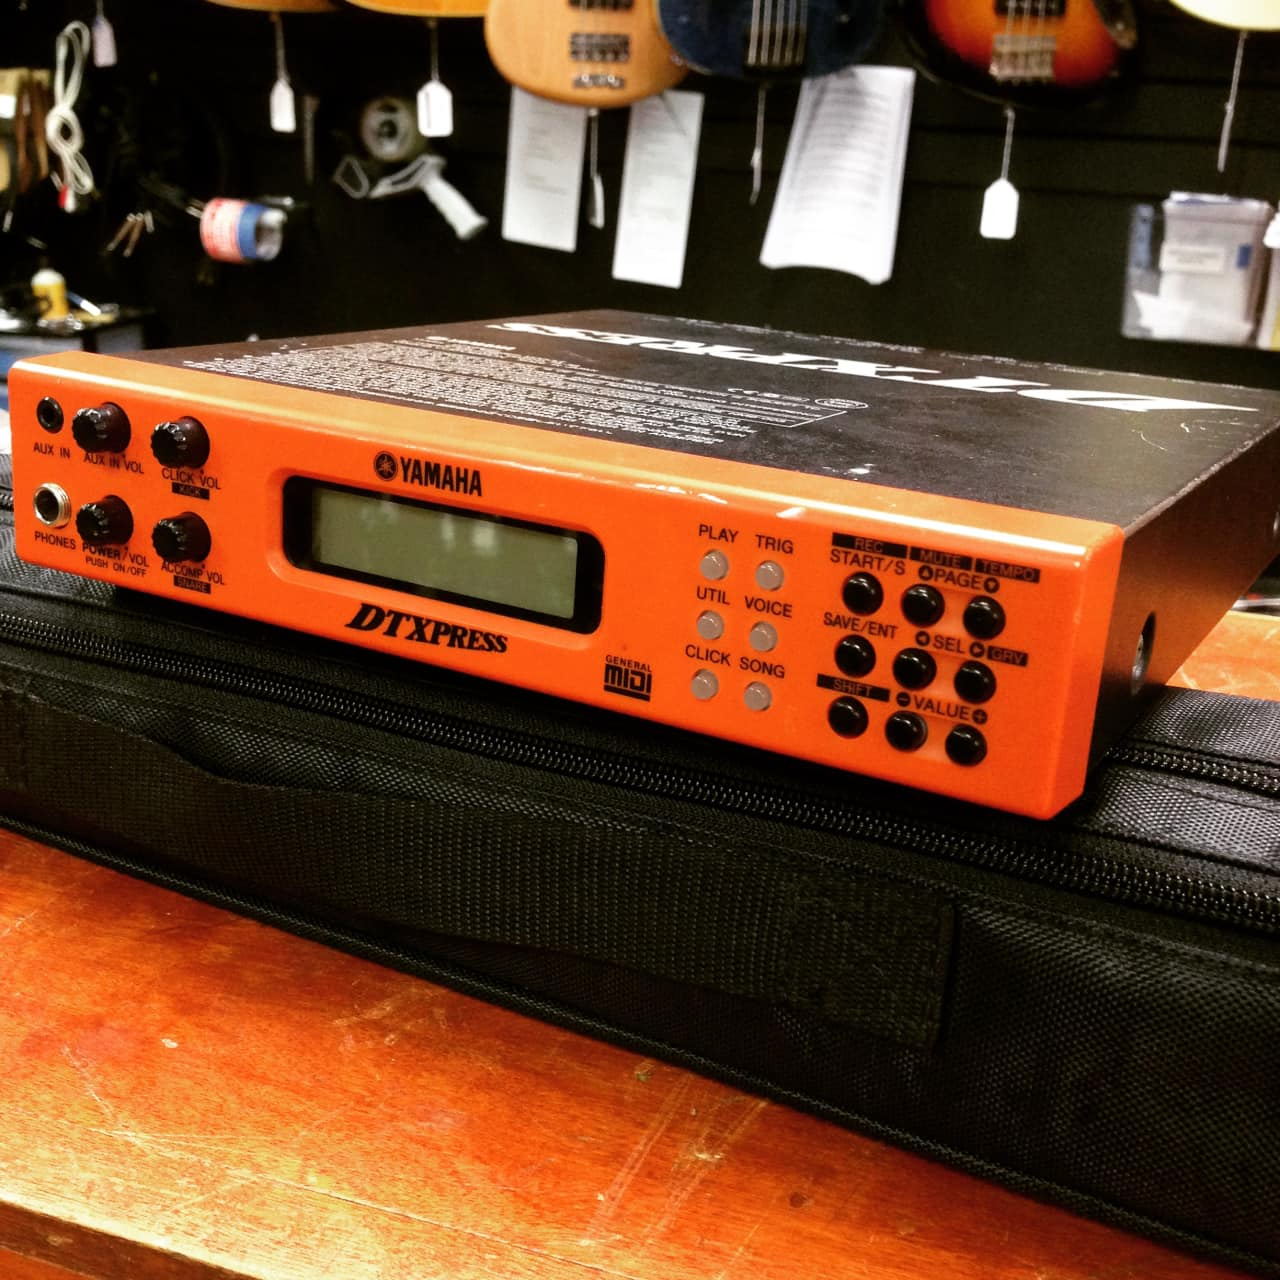 Yamaha dtxpress drum module w power supply reverb for Yamaha dtxpress review